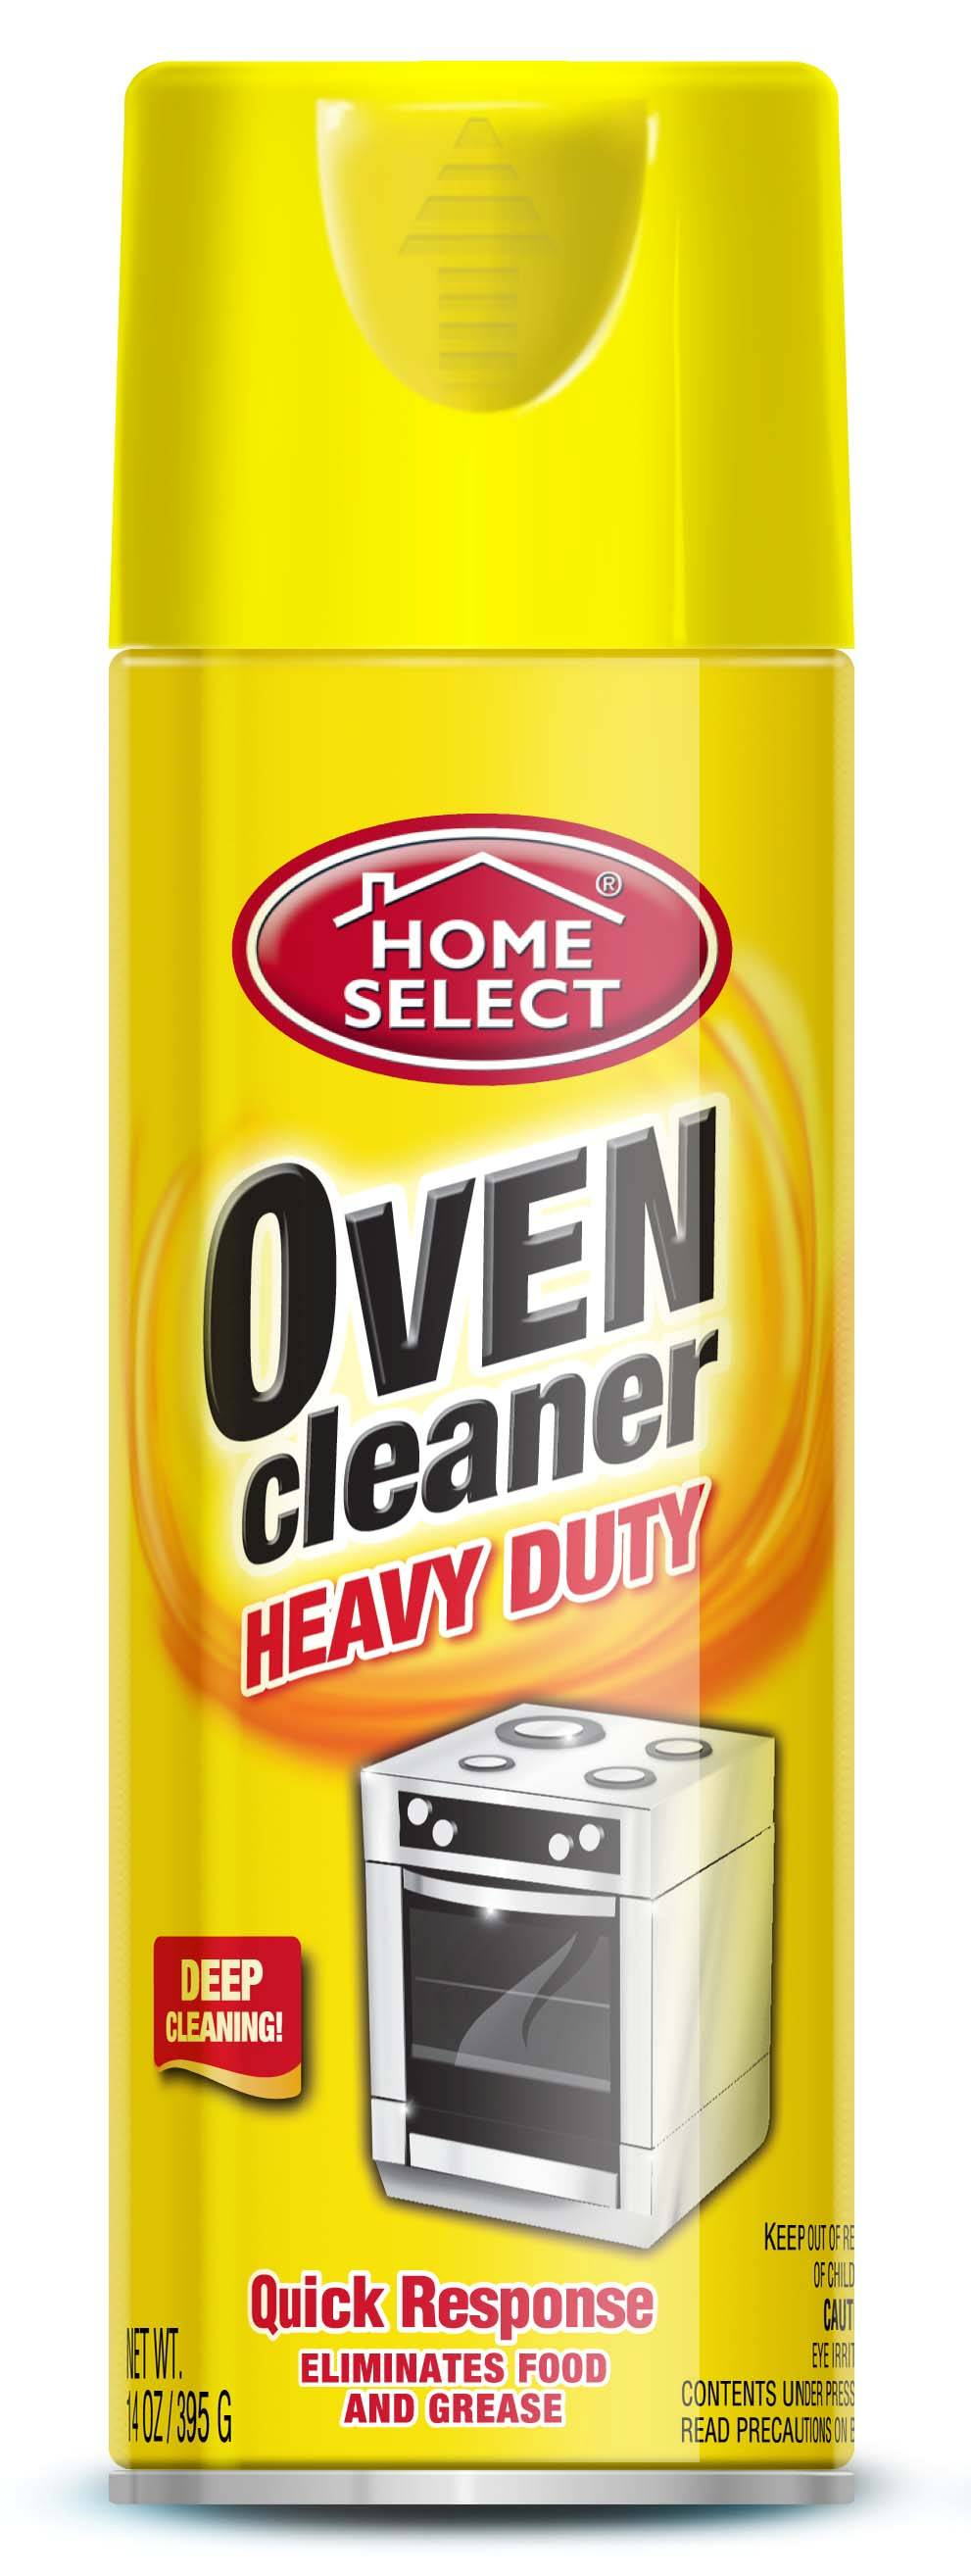 Delta Brands 14oz Home Select Oven Cleaner Heavy Duty 6104-12